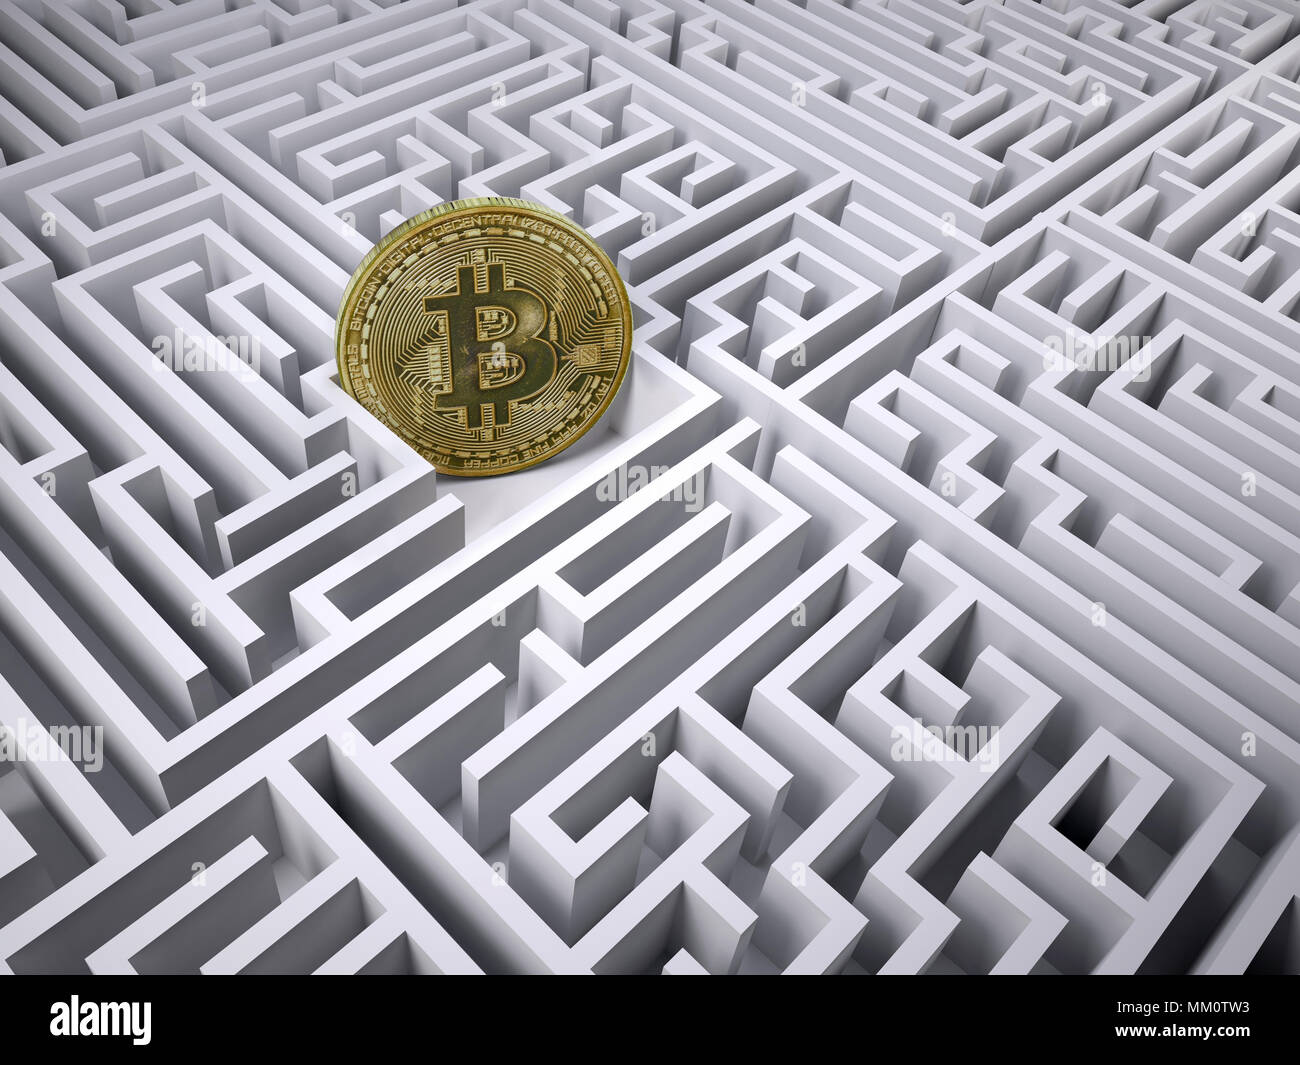 bitcoin in the labyrinth maze, 3d illustration - Stock Image